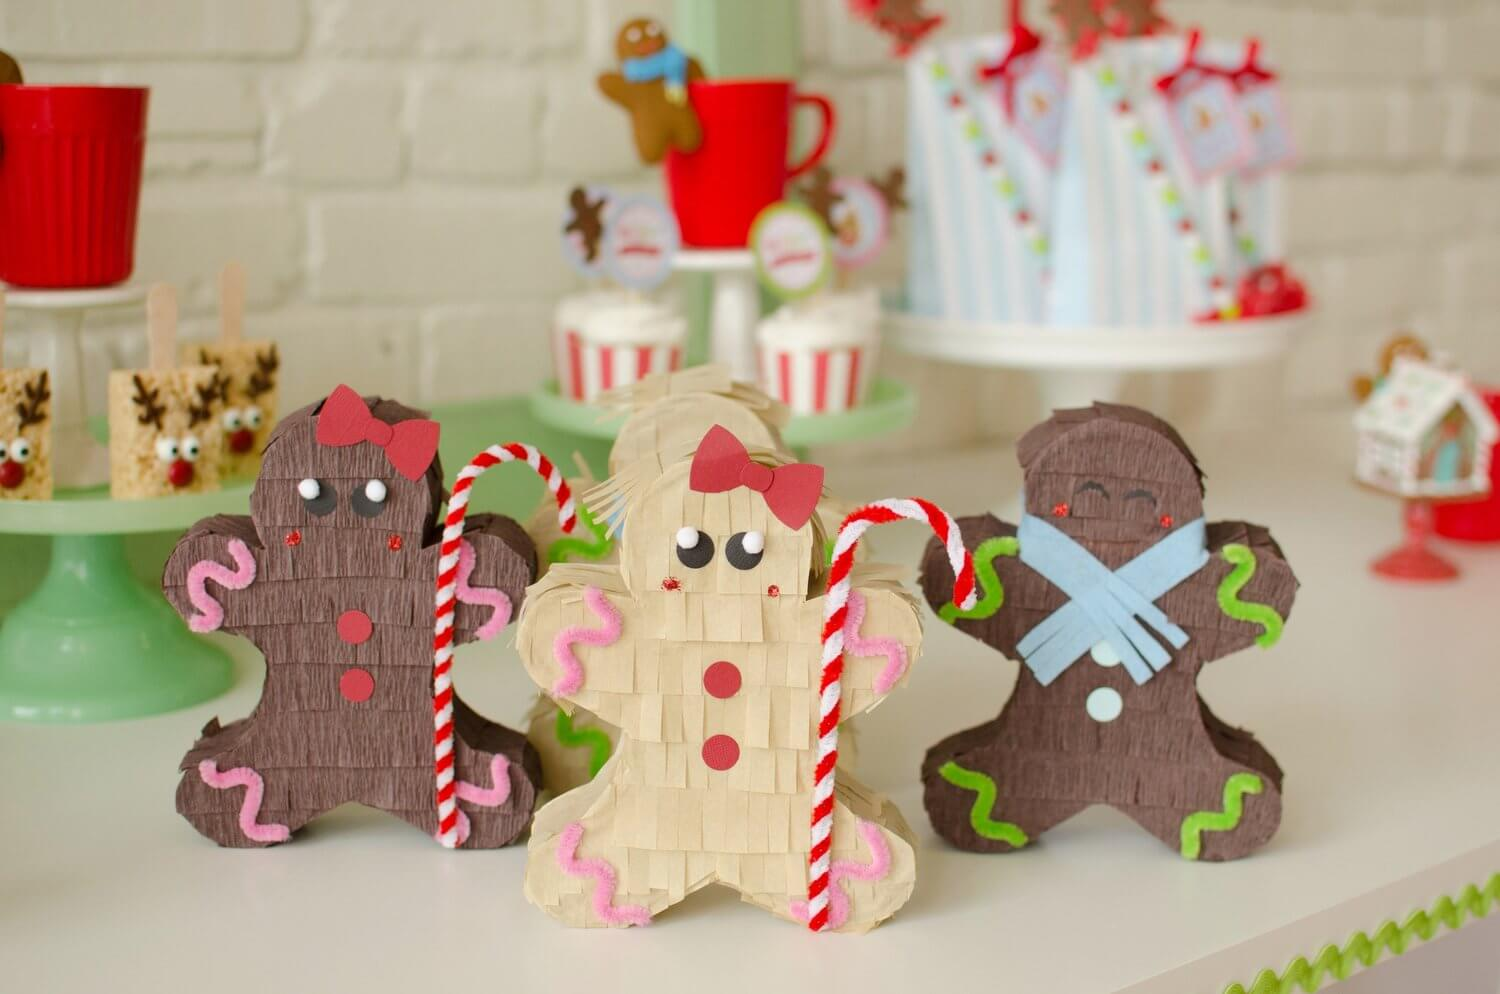 These gingerbread man pinatas are the cutest holiday party decor for a Christmas cookie decorating party. See more from this Cookies for Santa party on www.minteventdesign.com - styled by Austin, Texas based party planner Mint Event Design. #holidayparty #holidaypartyideas #christmaspartyideas #pinatas #gingerbreadman #cookieparty